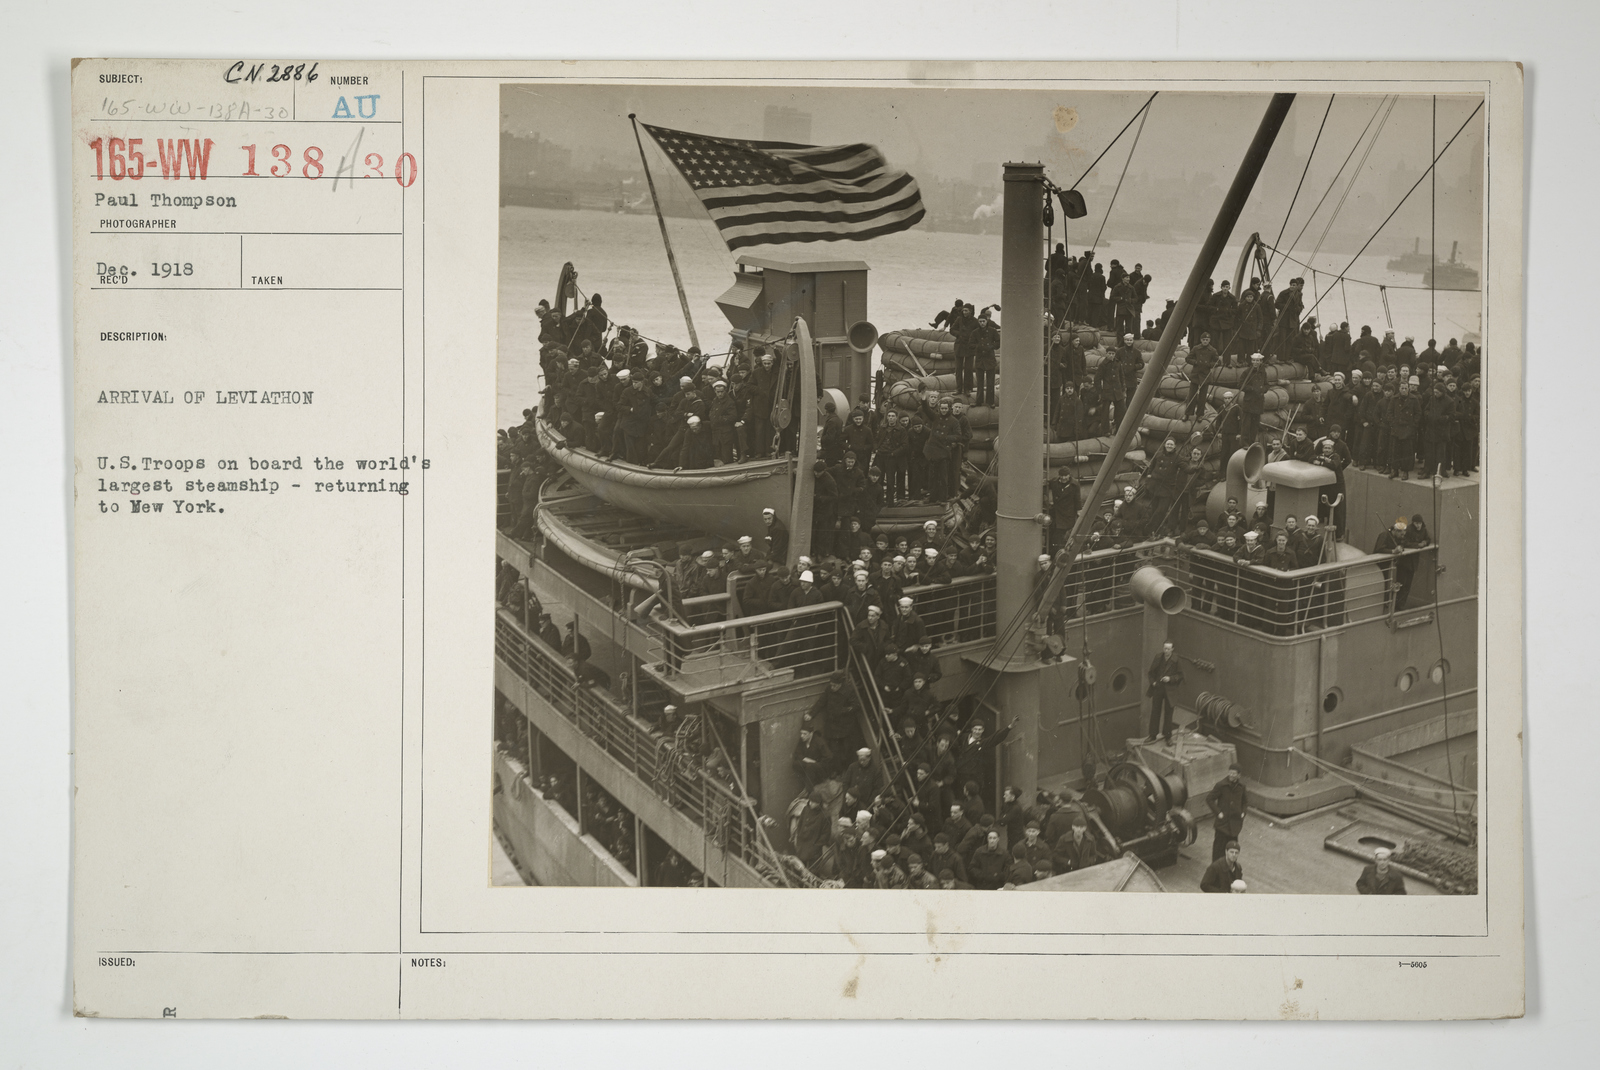 Demobilization - Miscellaneous - Arrival of Leviathan. U.S. troops on board the world's largest steamship, returning to New York